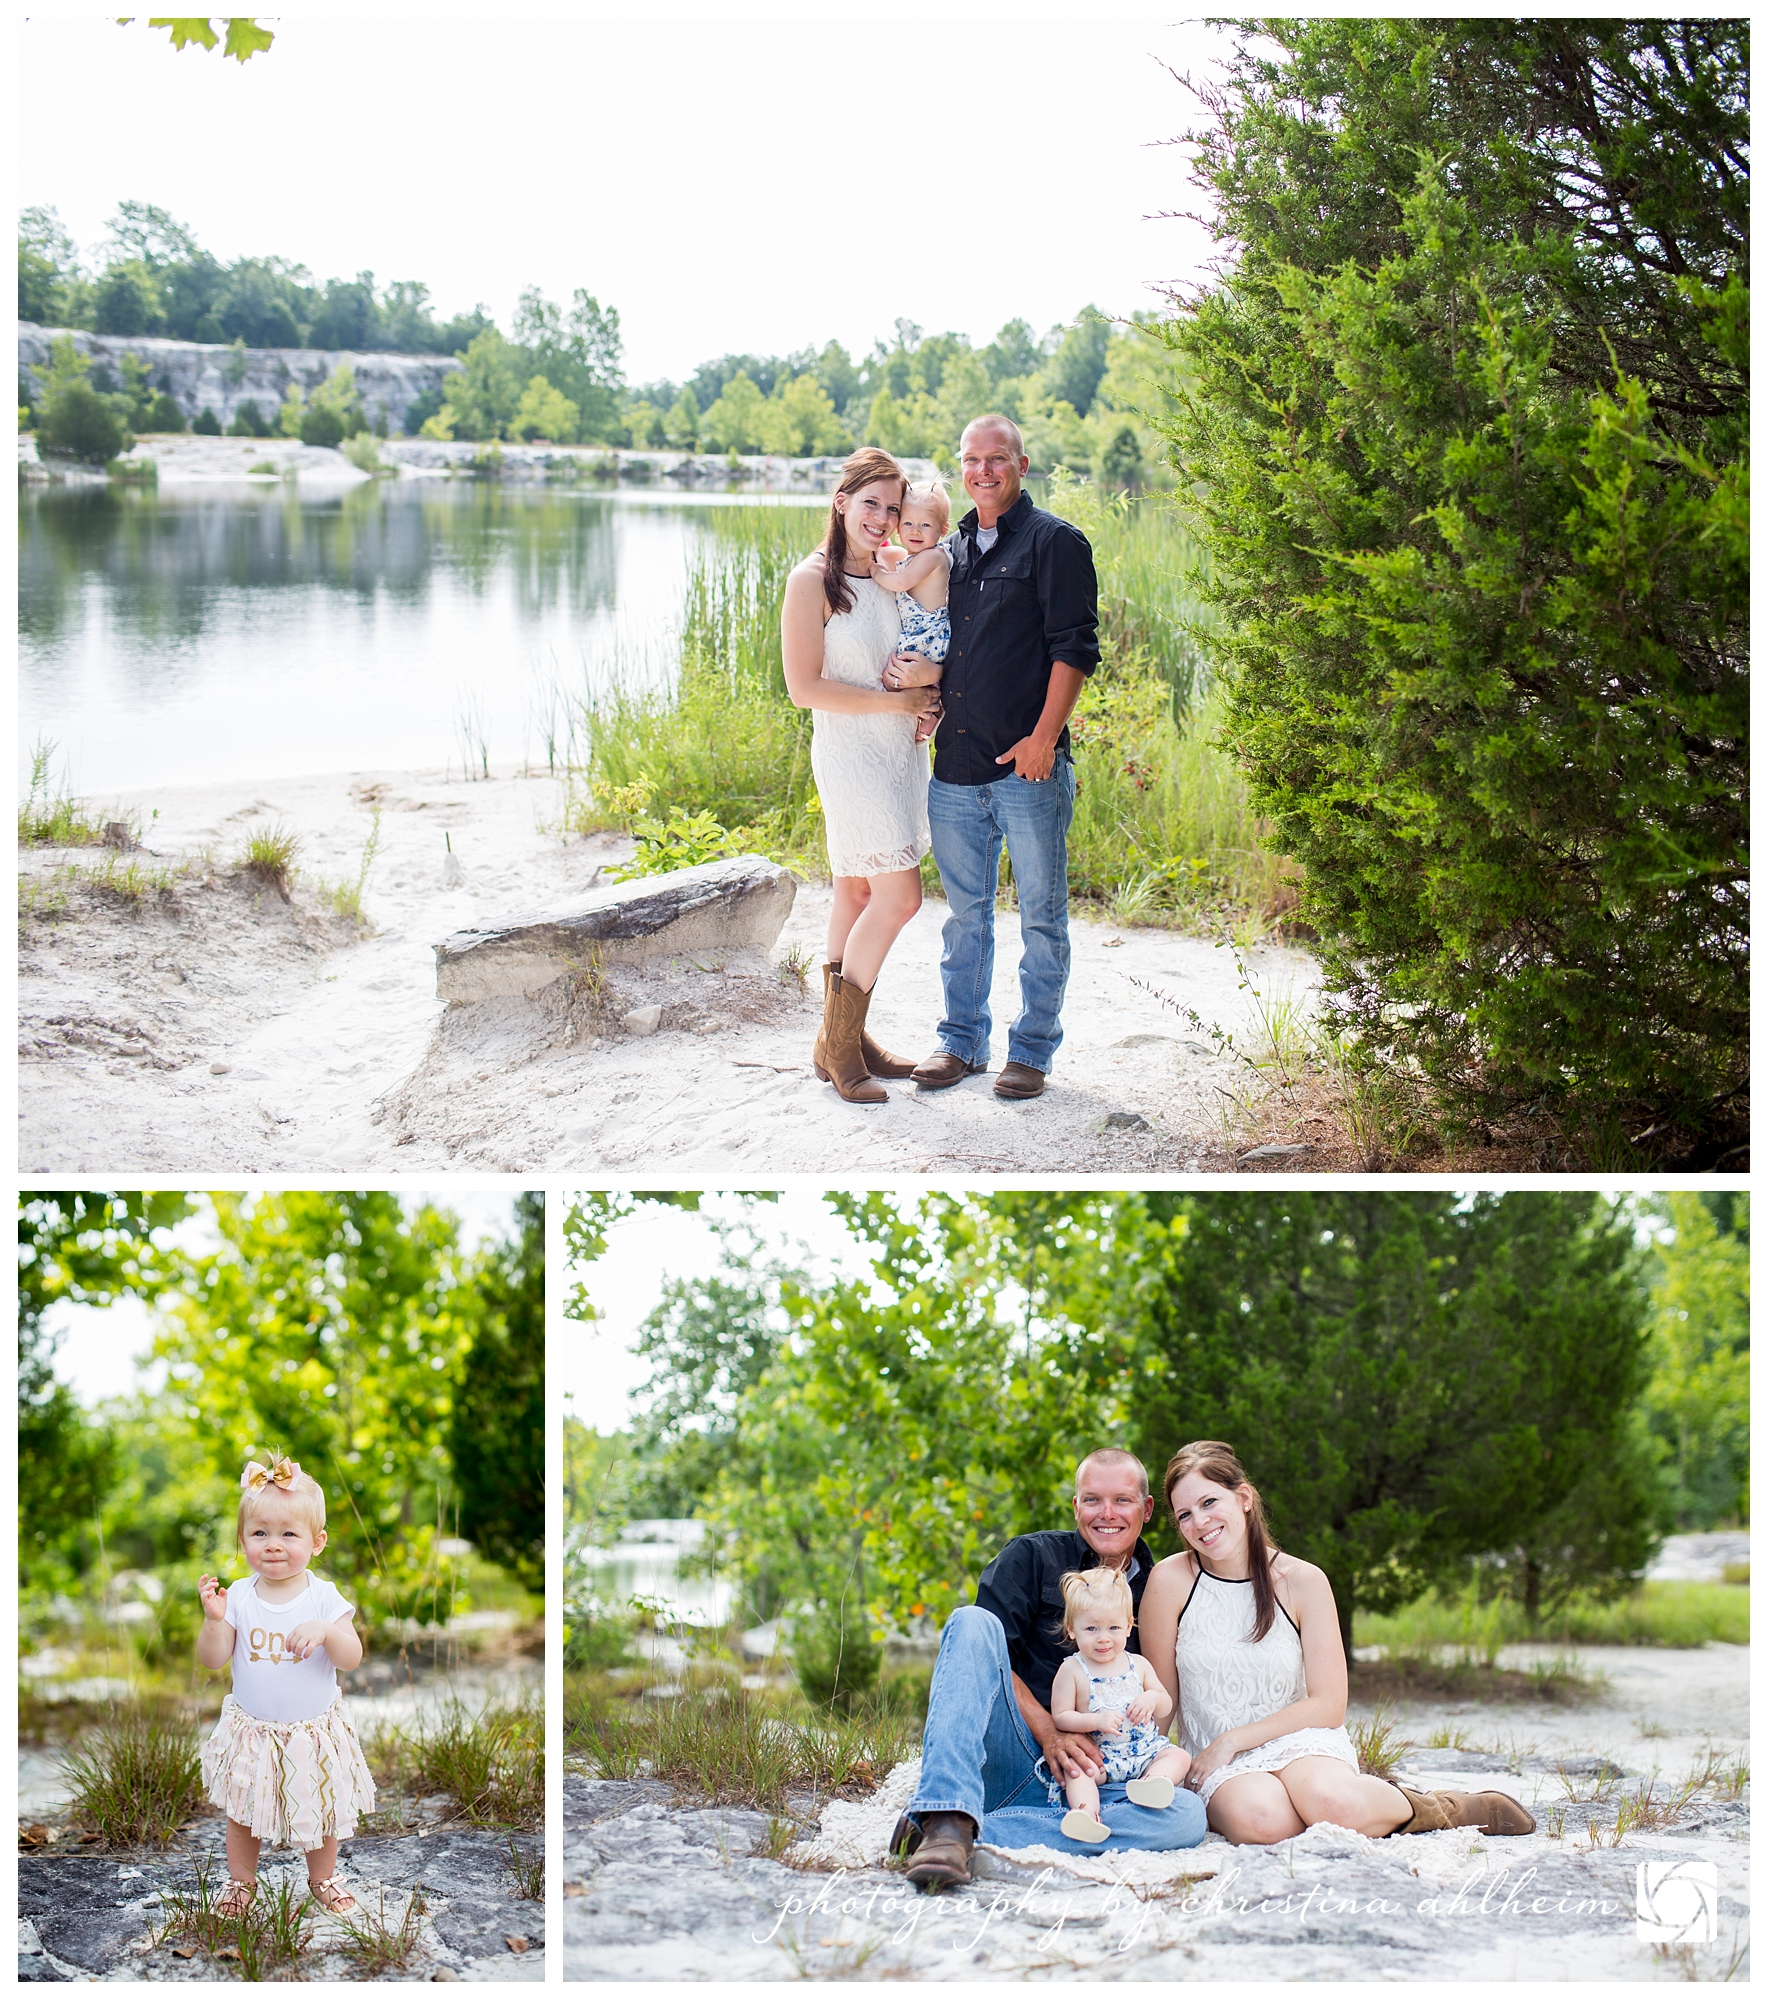 Family-Photographer-Wentzville-Missouri-Lilly_1yr-48